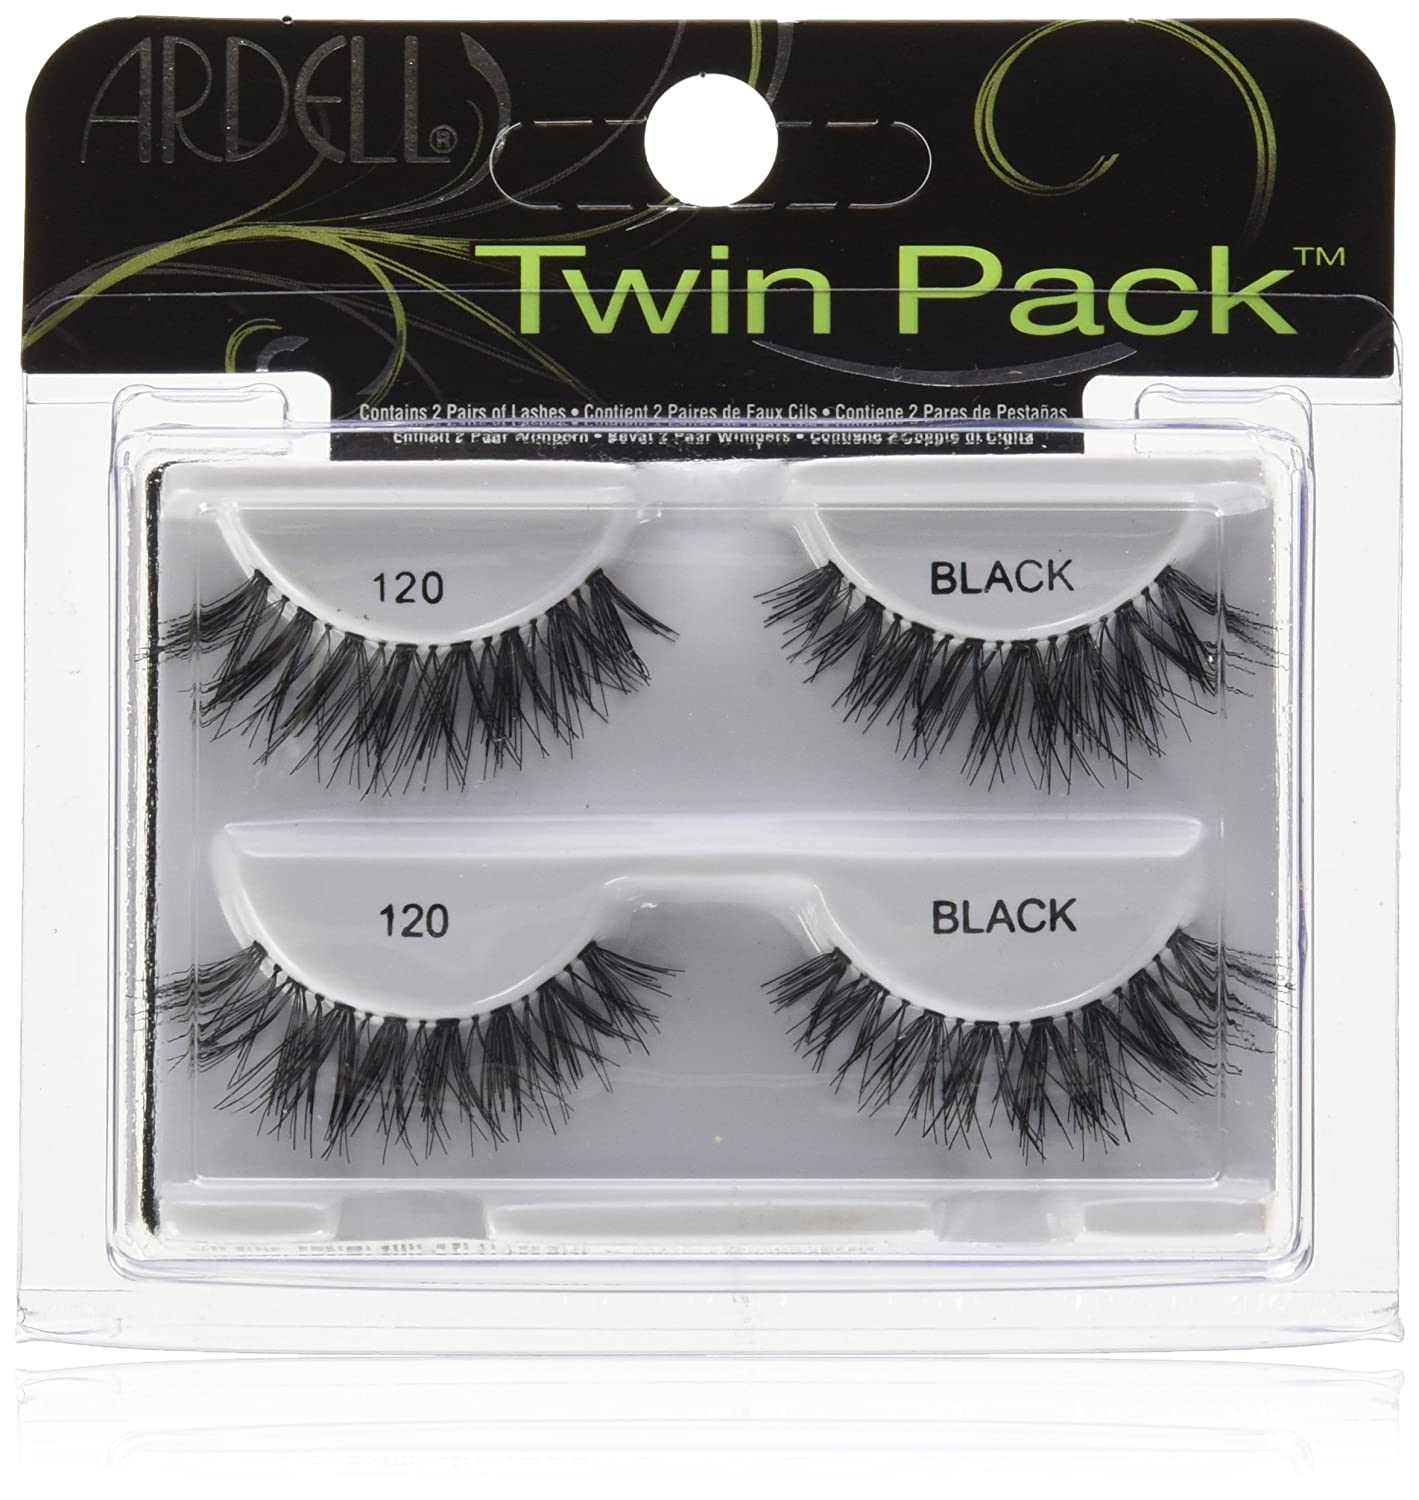 eea4897ee36 ARDELL - the original Twin Pack Lash 120 black, 2 pairs: Amazon.co.uk:  Beauty